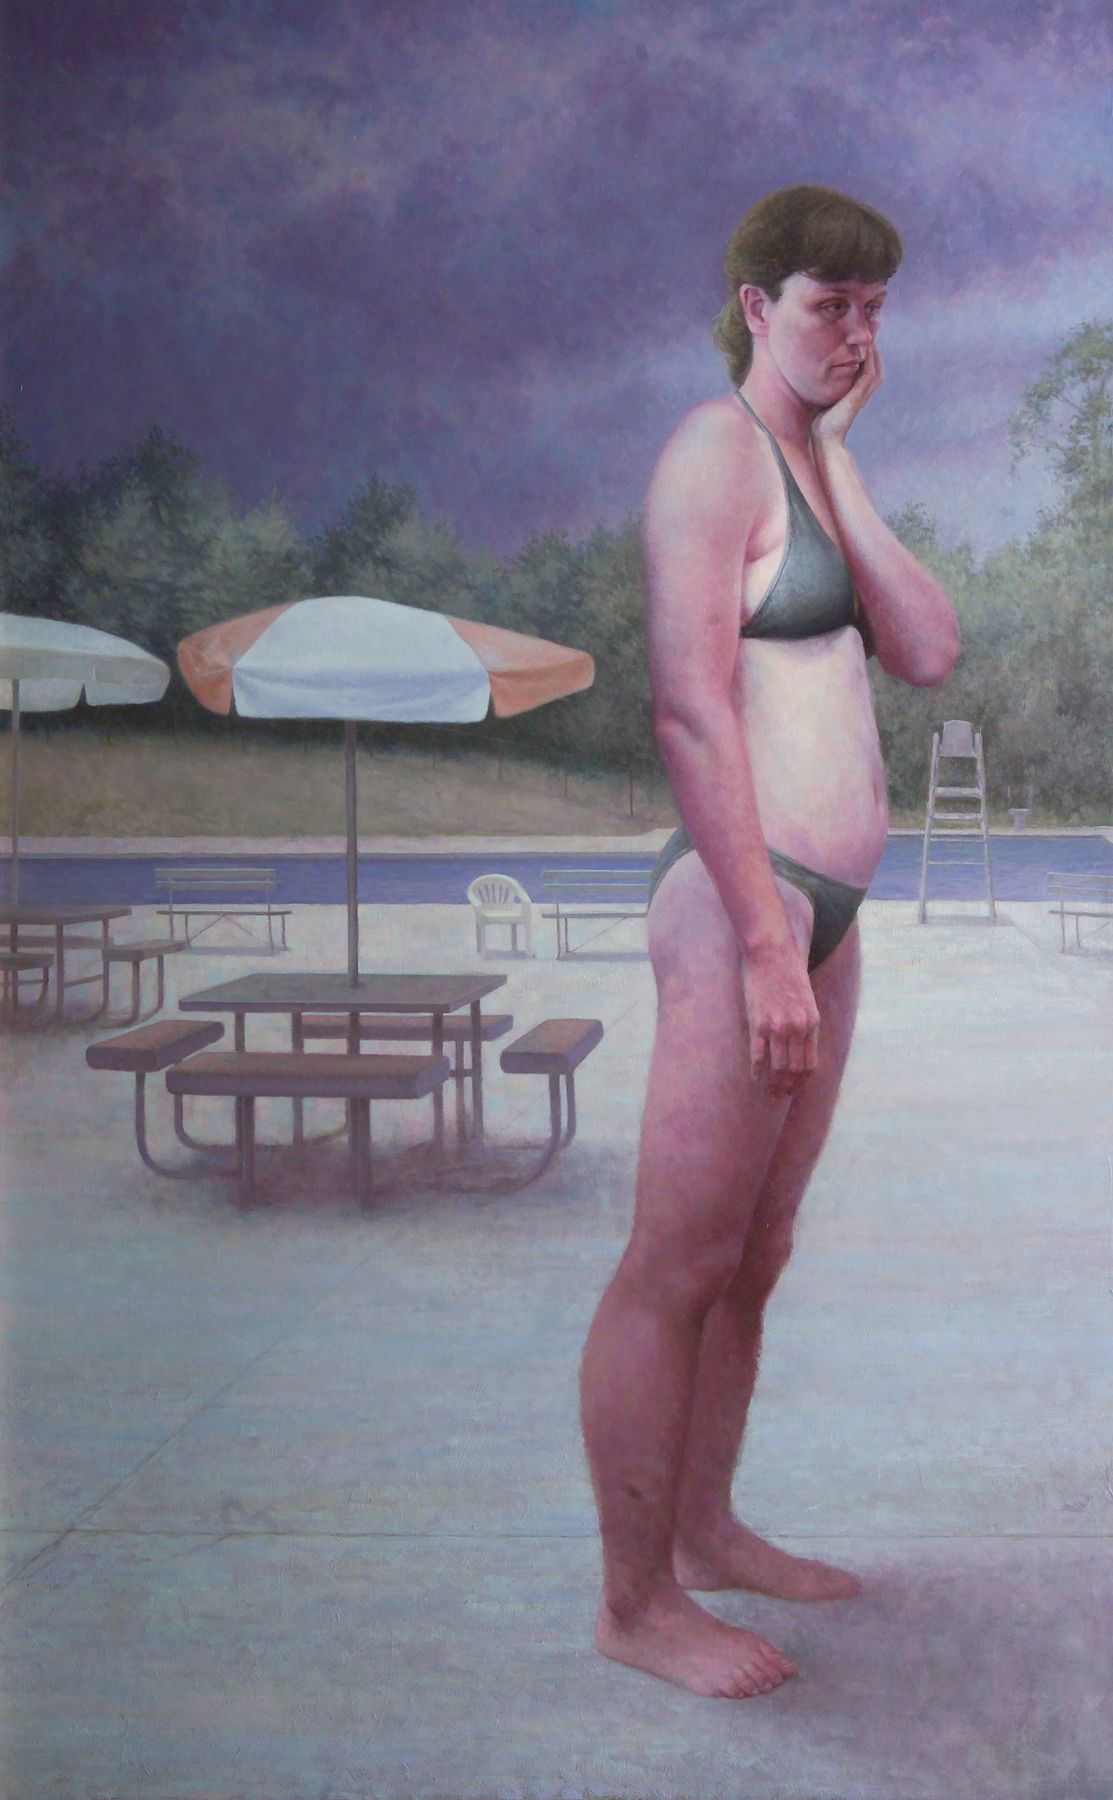 michele fenniak, Morning Swim, 2005, oil on panel, 48 x 30 inches